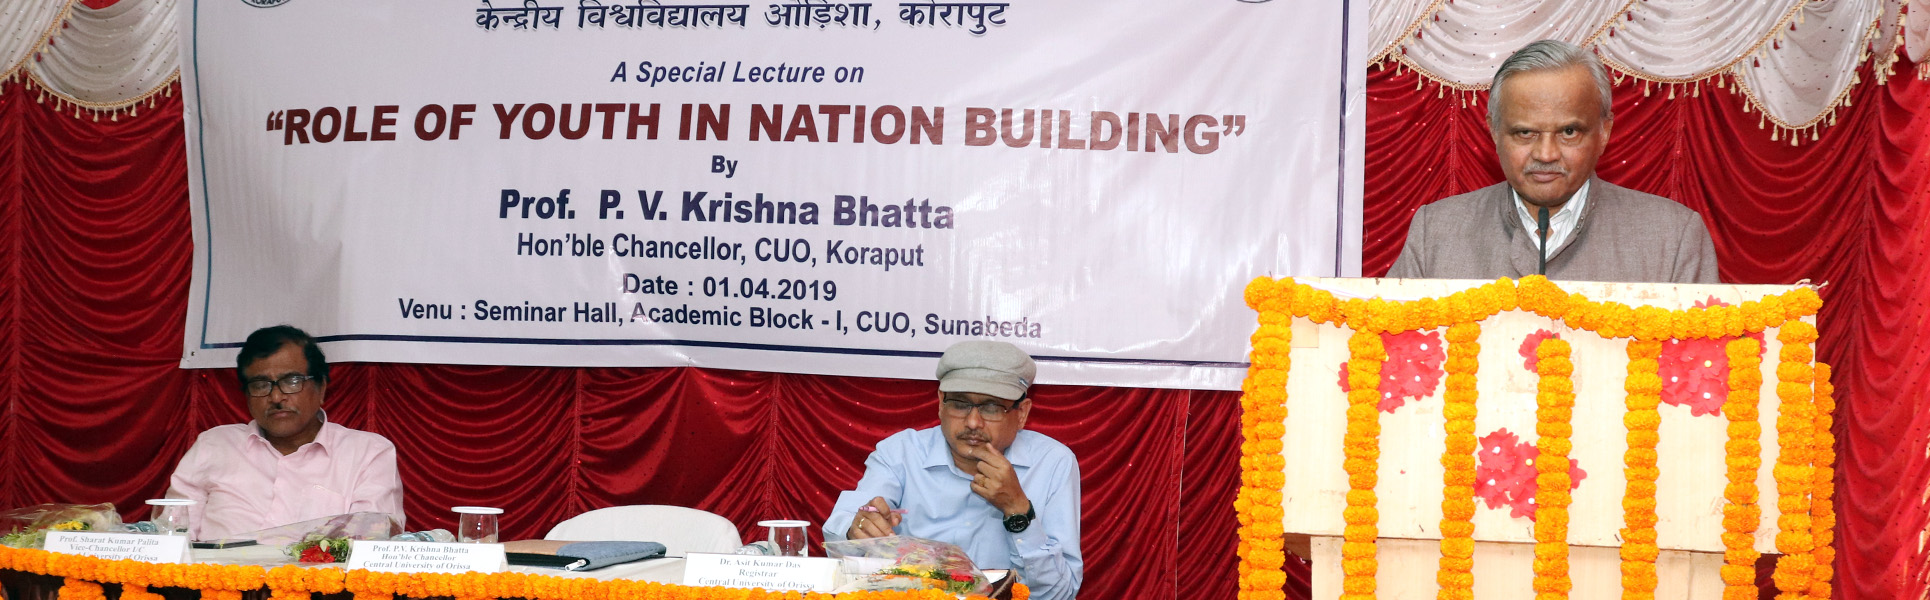 HON'BLE CHANCELLOR, PROF. P. V. KRISHNA BHATTA ADDRESSED ON ROLE OF YOUTH IN NATION BUILDING